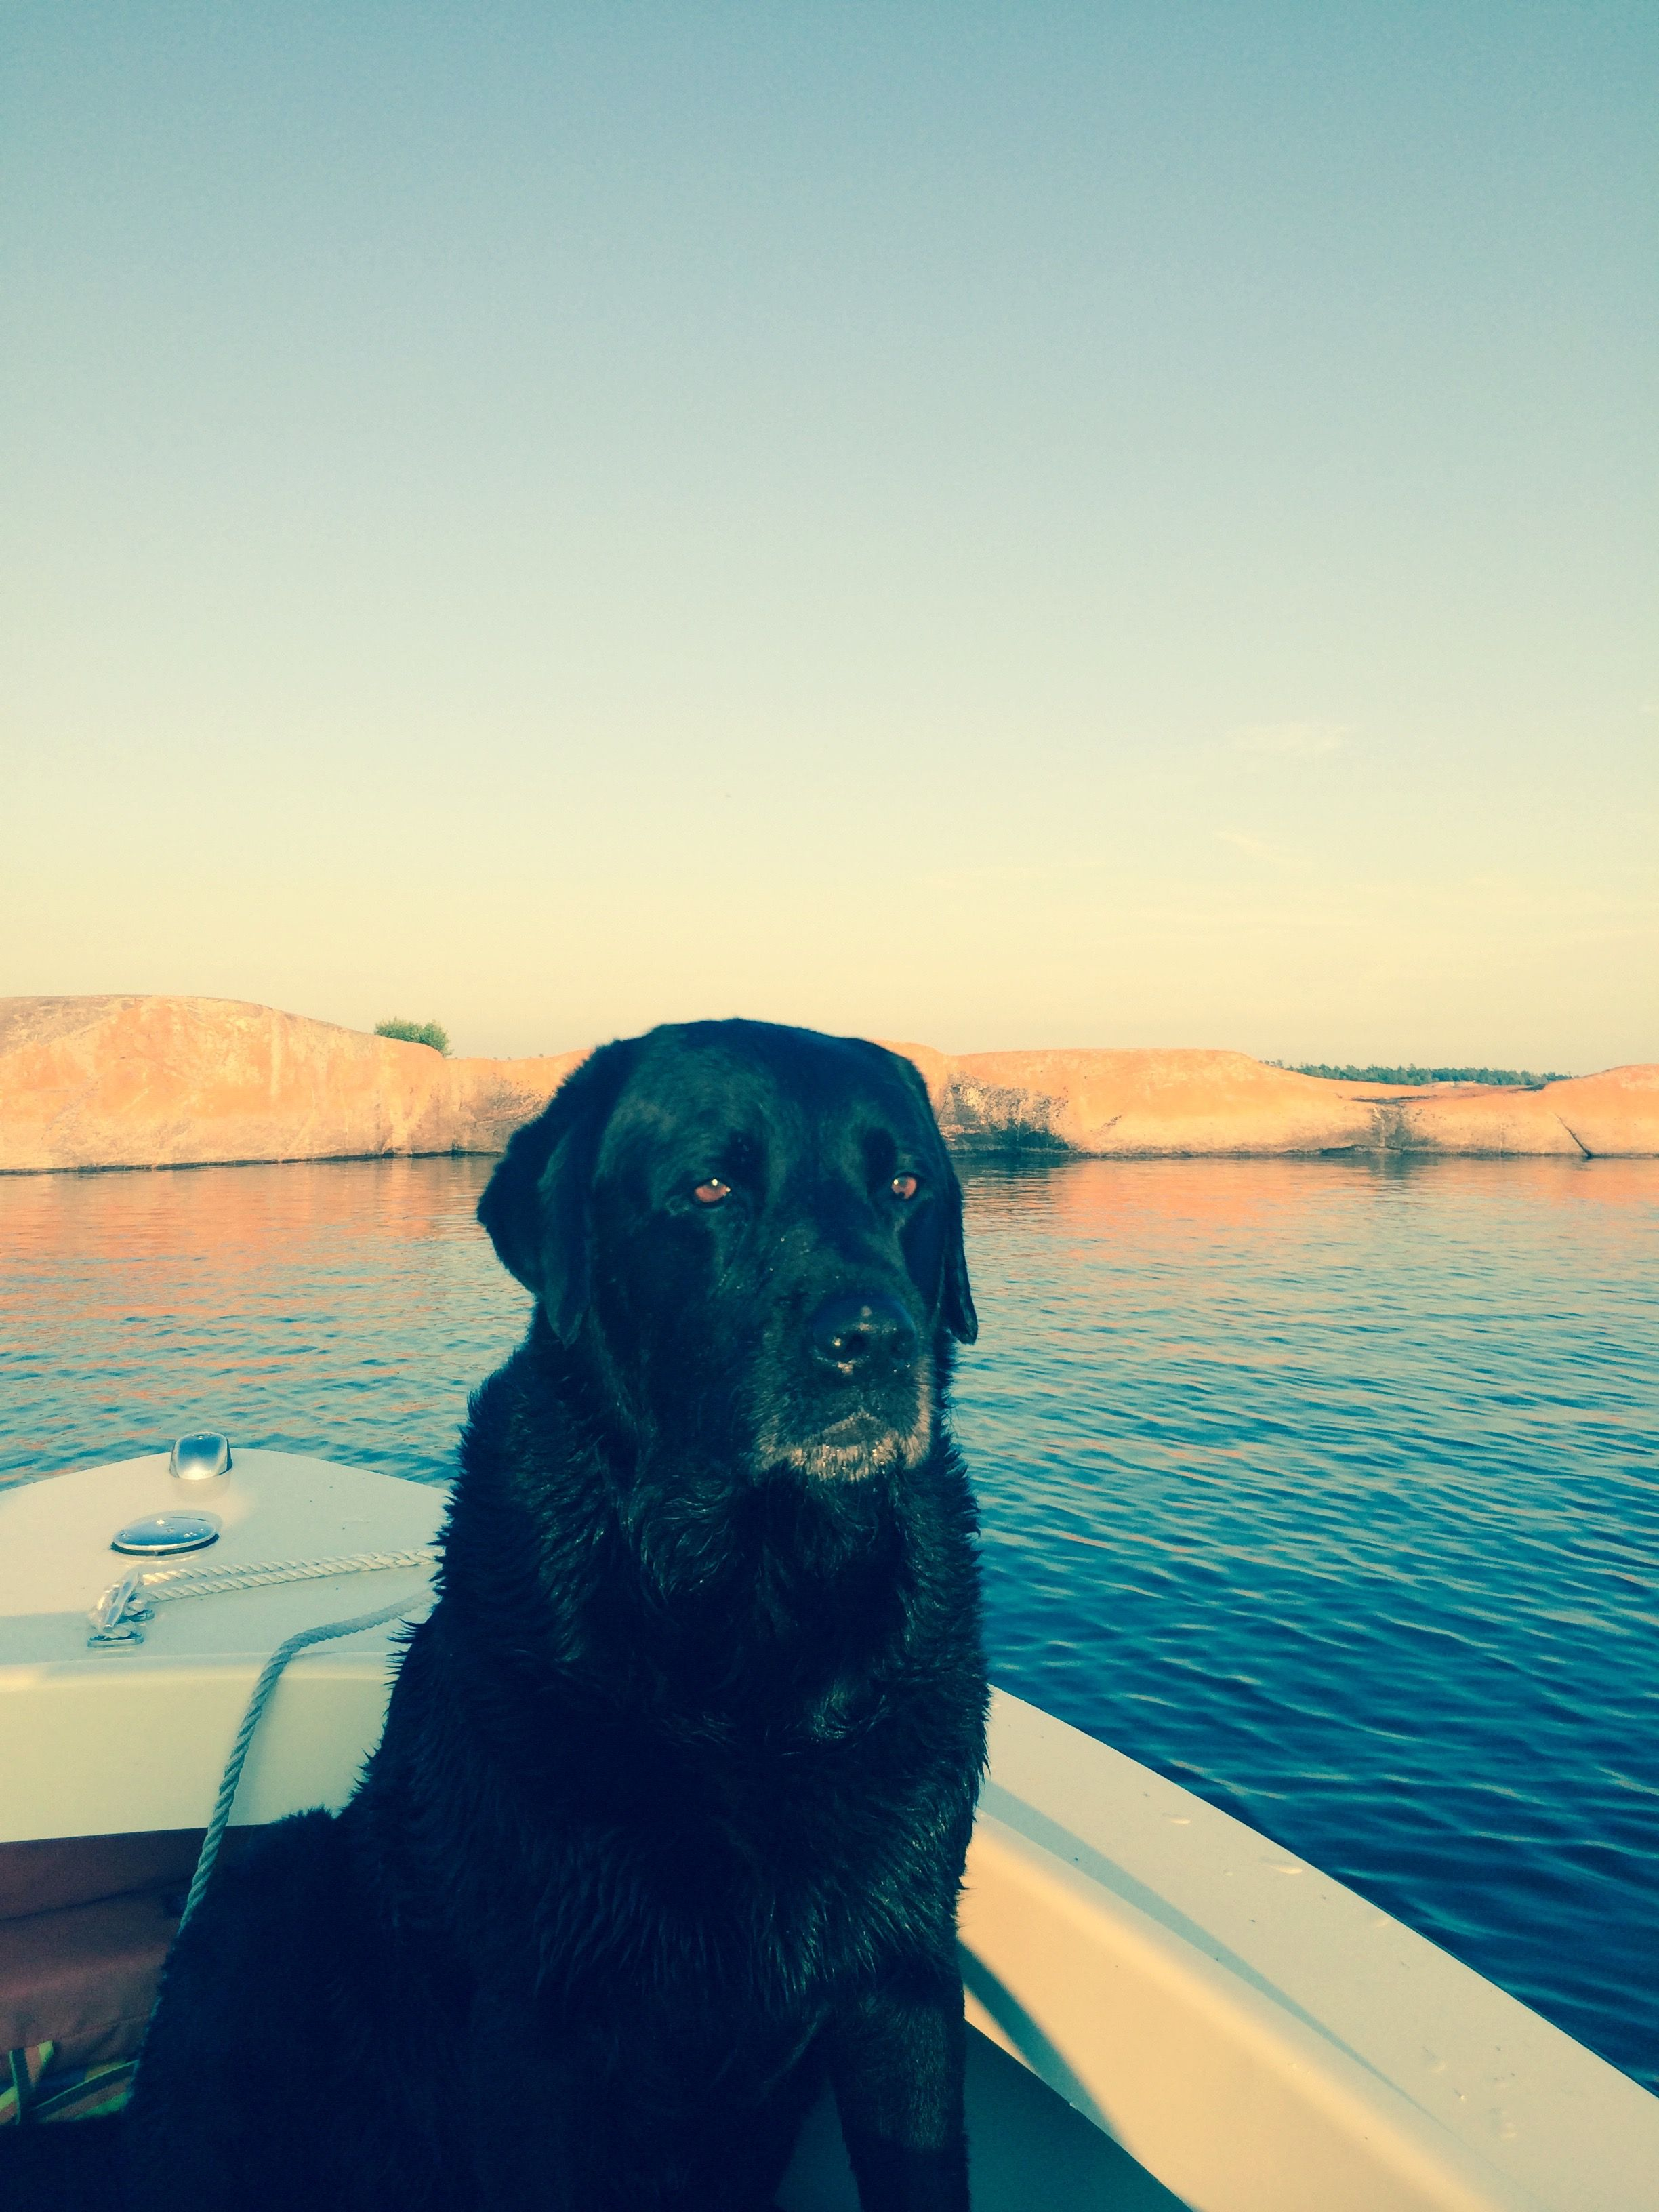 Our Labrador late afternoon near American camp island